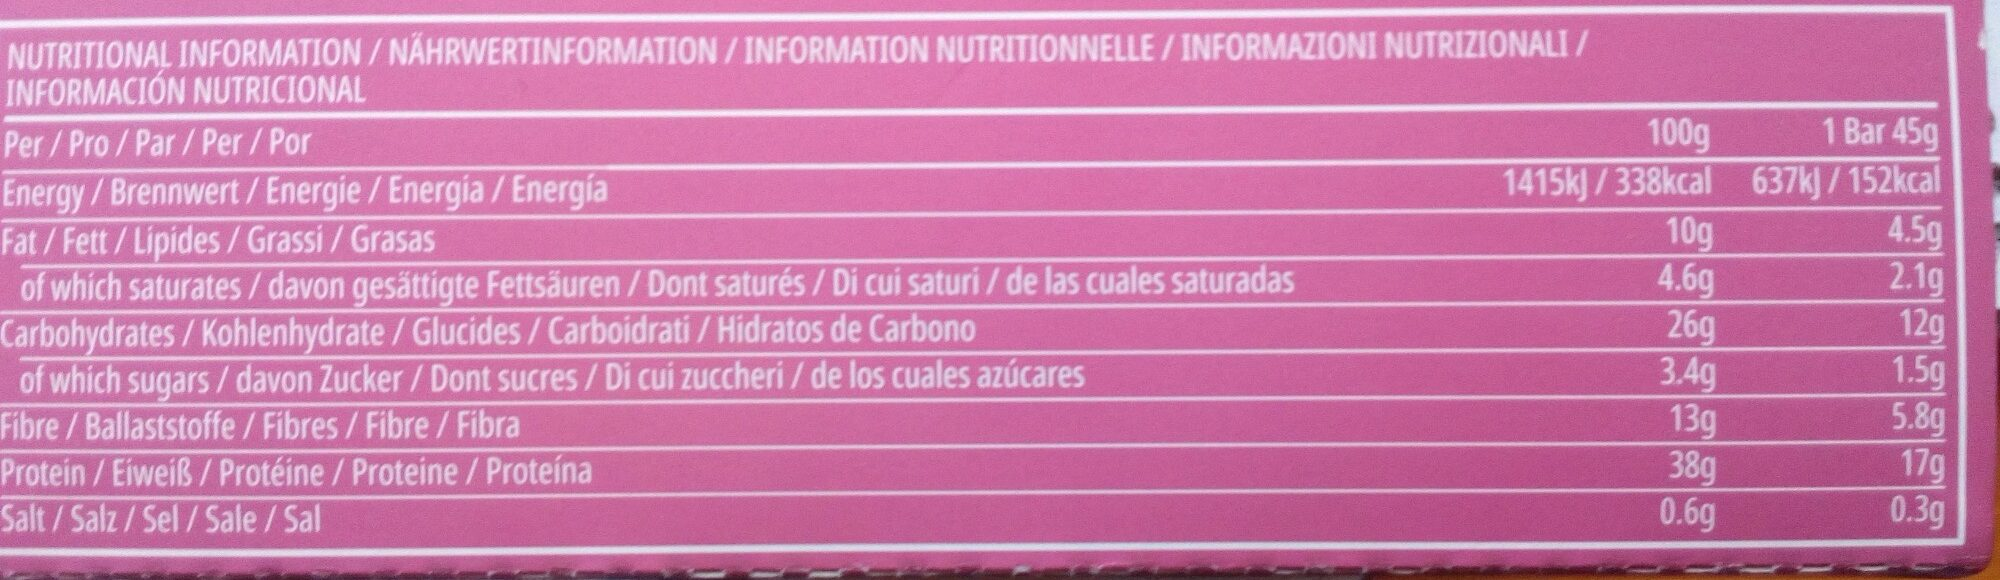 Skinny Protein Bar - Nutrition facts